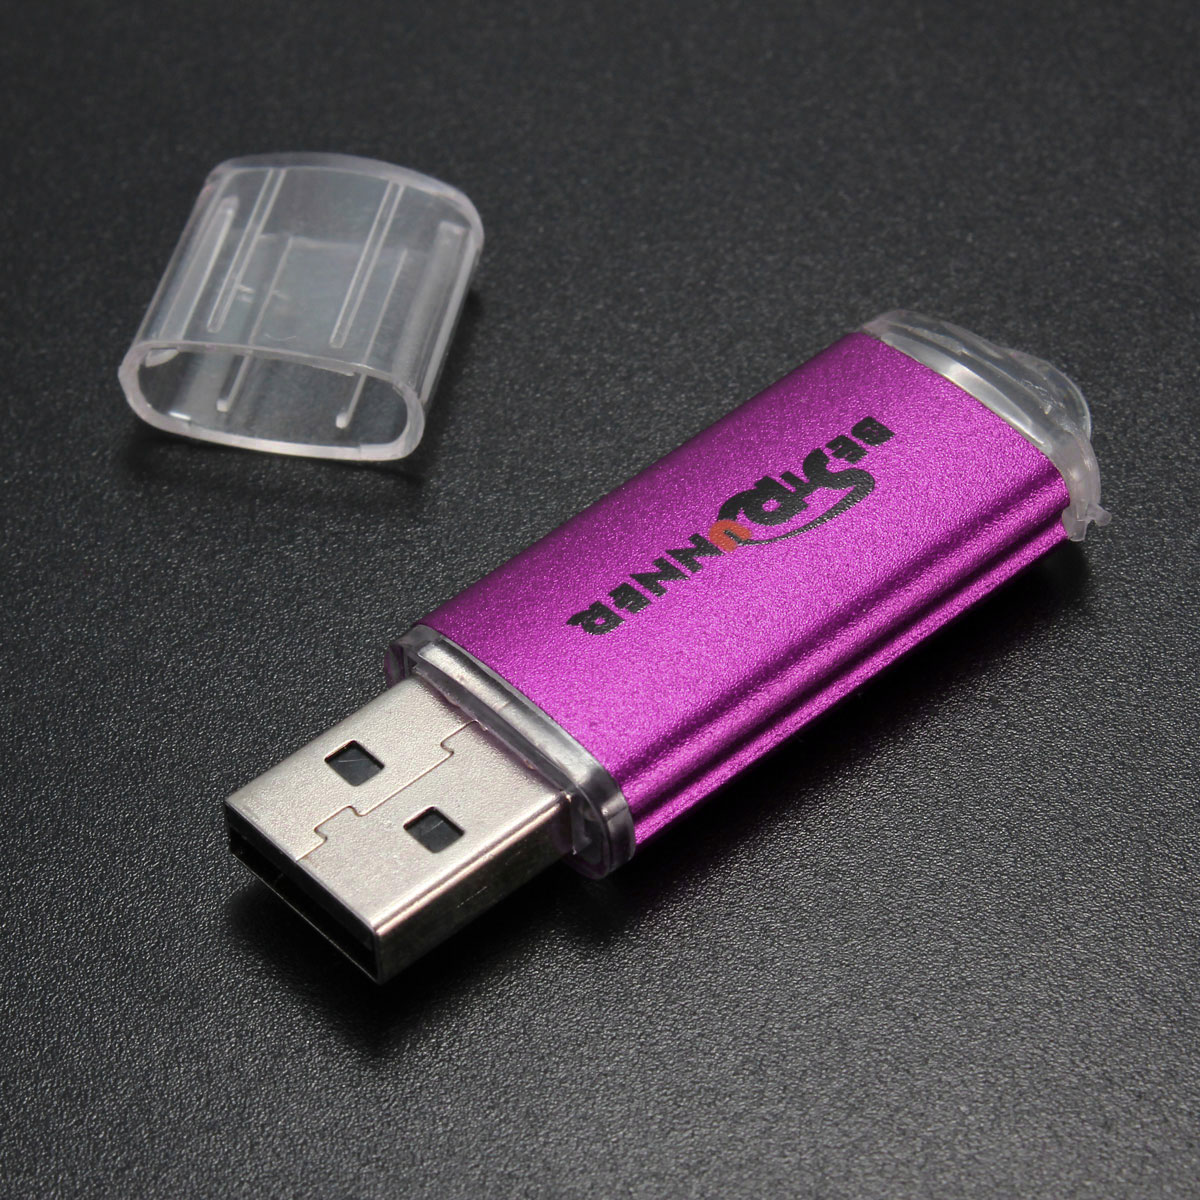 Multi Color 128MB USB 2.0 Flash Memory Stick Pen Drive Storage Thumb U Disk Gift,Red color